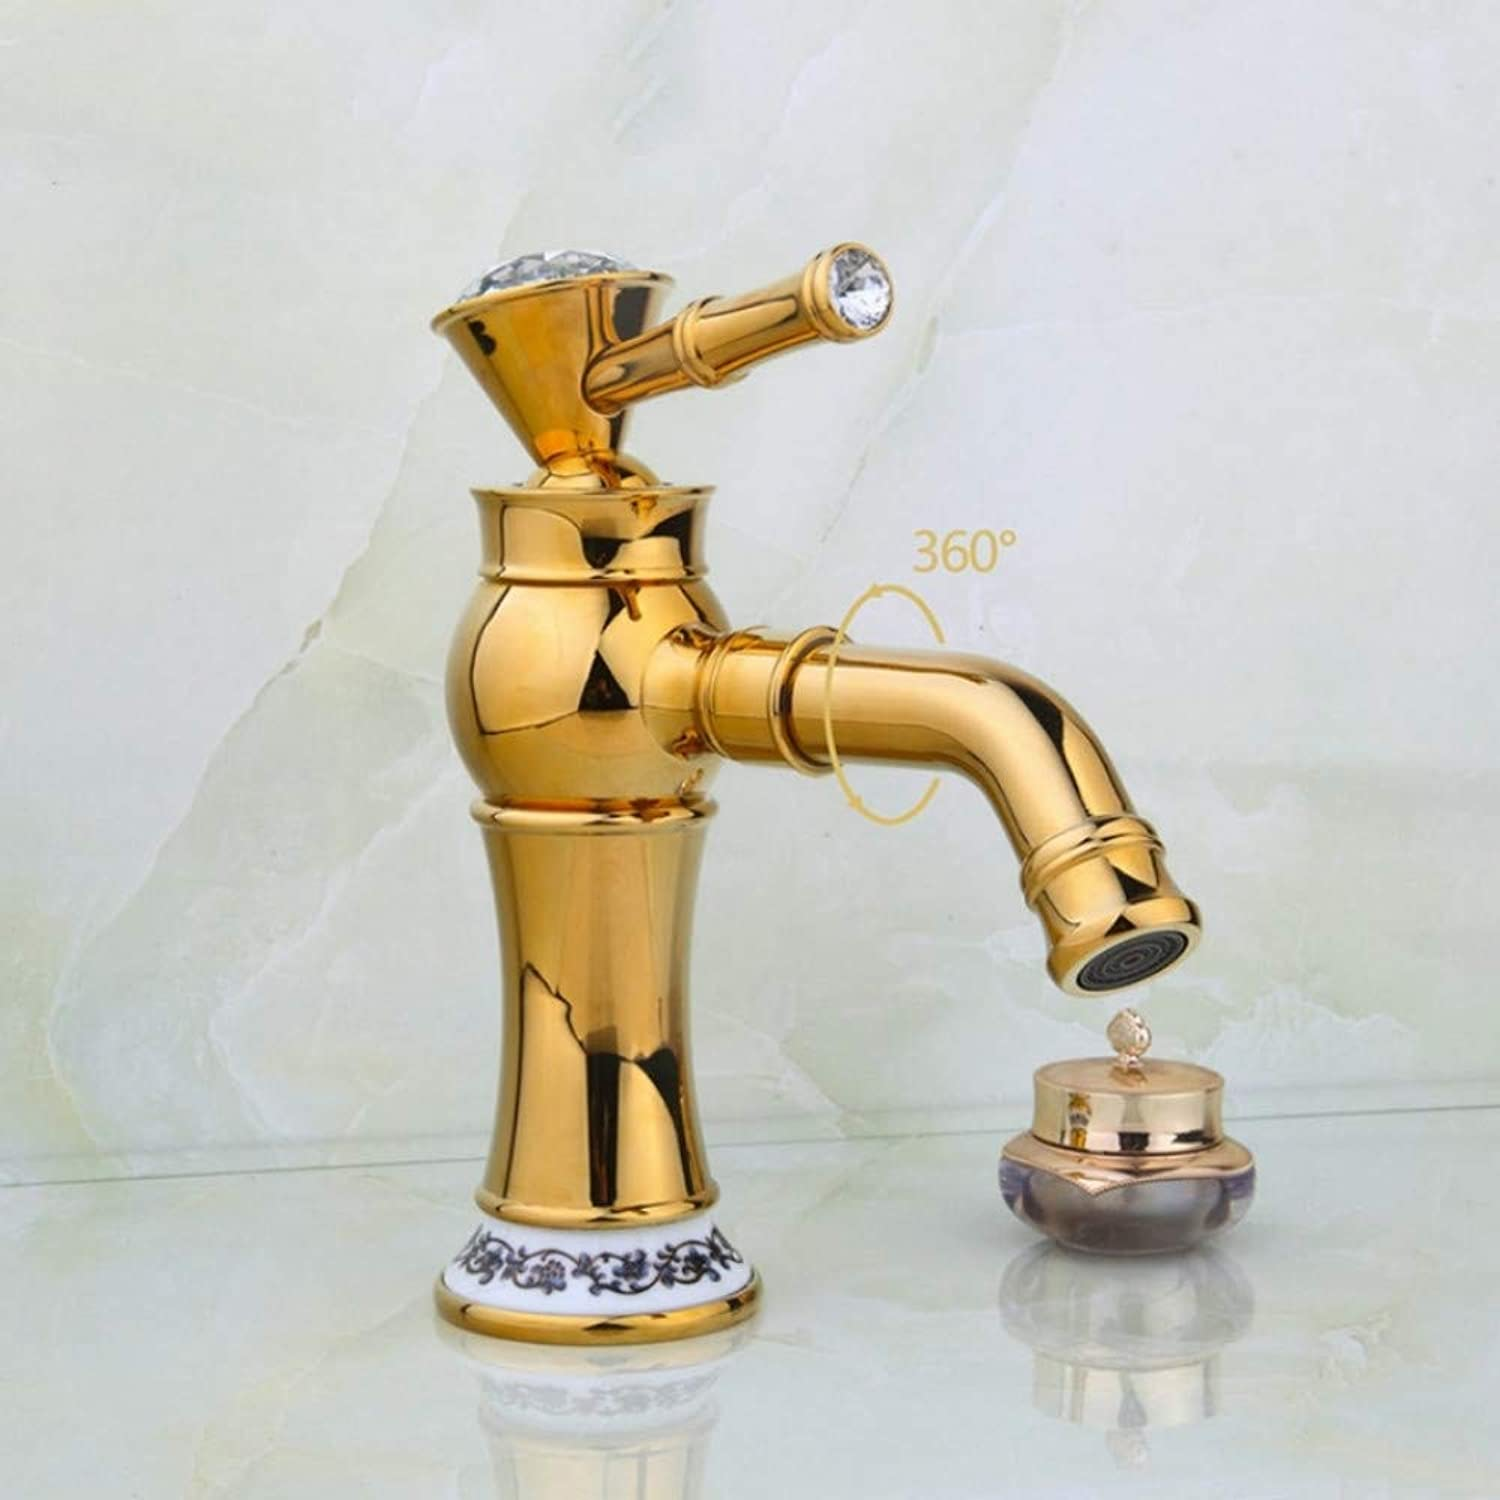 Lddpl Luxury golden Polish Bathroom Basin Sink Mixer Tap Faucet Diamond Handle Mixer redated Spout Faucet Water Mixer Tap